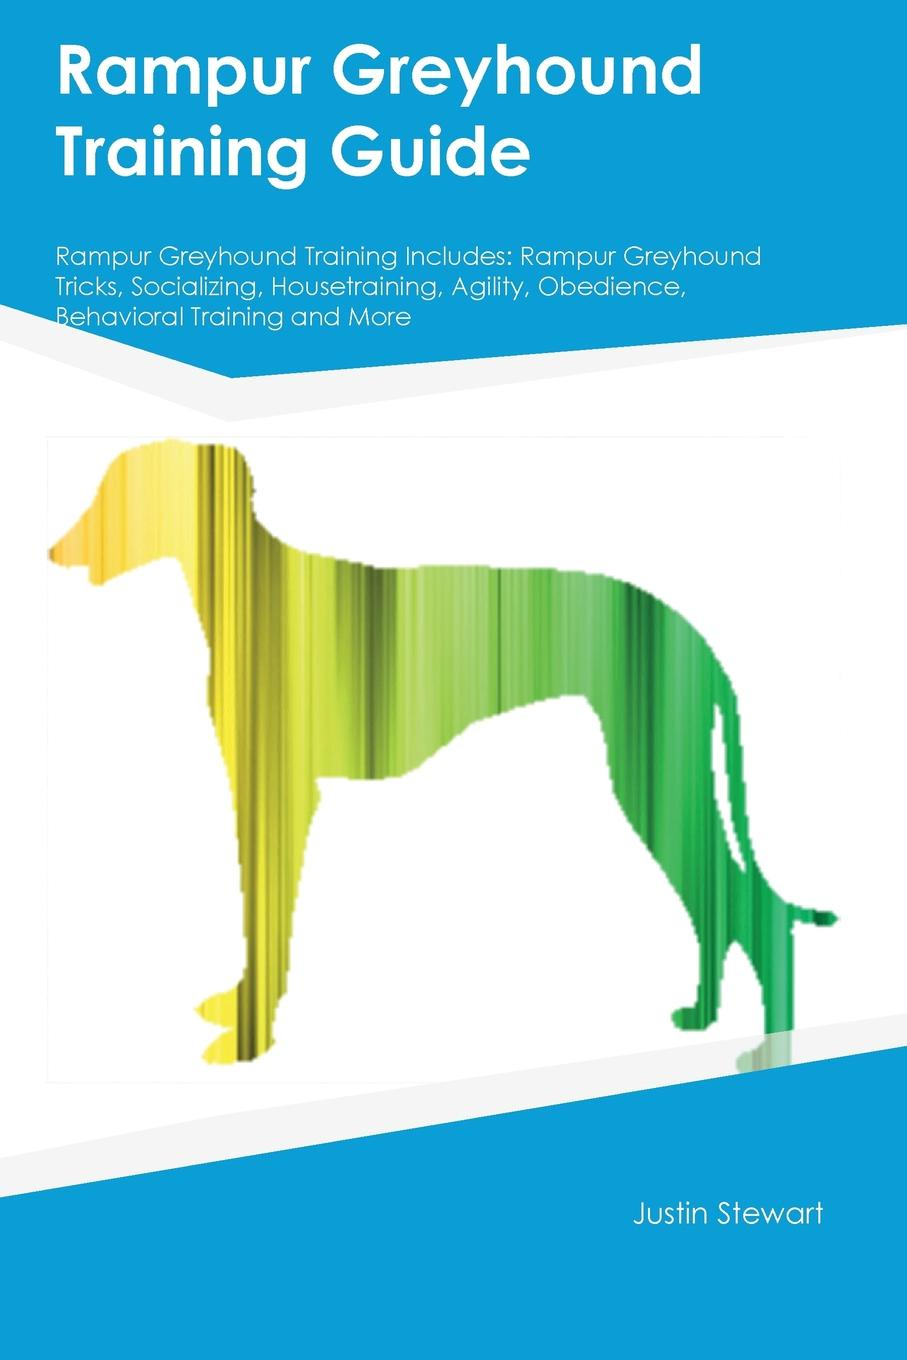 Rampur Greyhound Training Guide Rampur Greyhound Training Includes. Rampur Greyhound Tricks, Socializing, Housetraining, Agility, Obedience, Behavioral Training and More